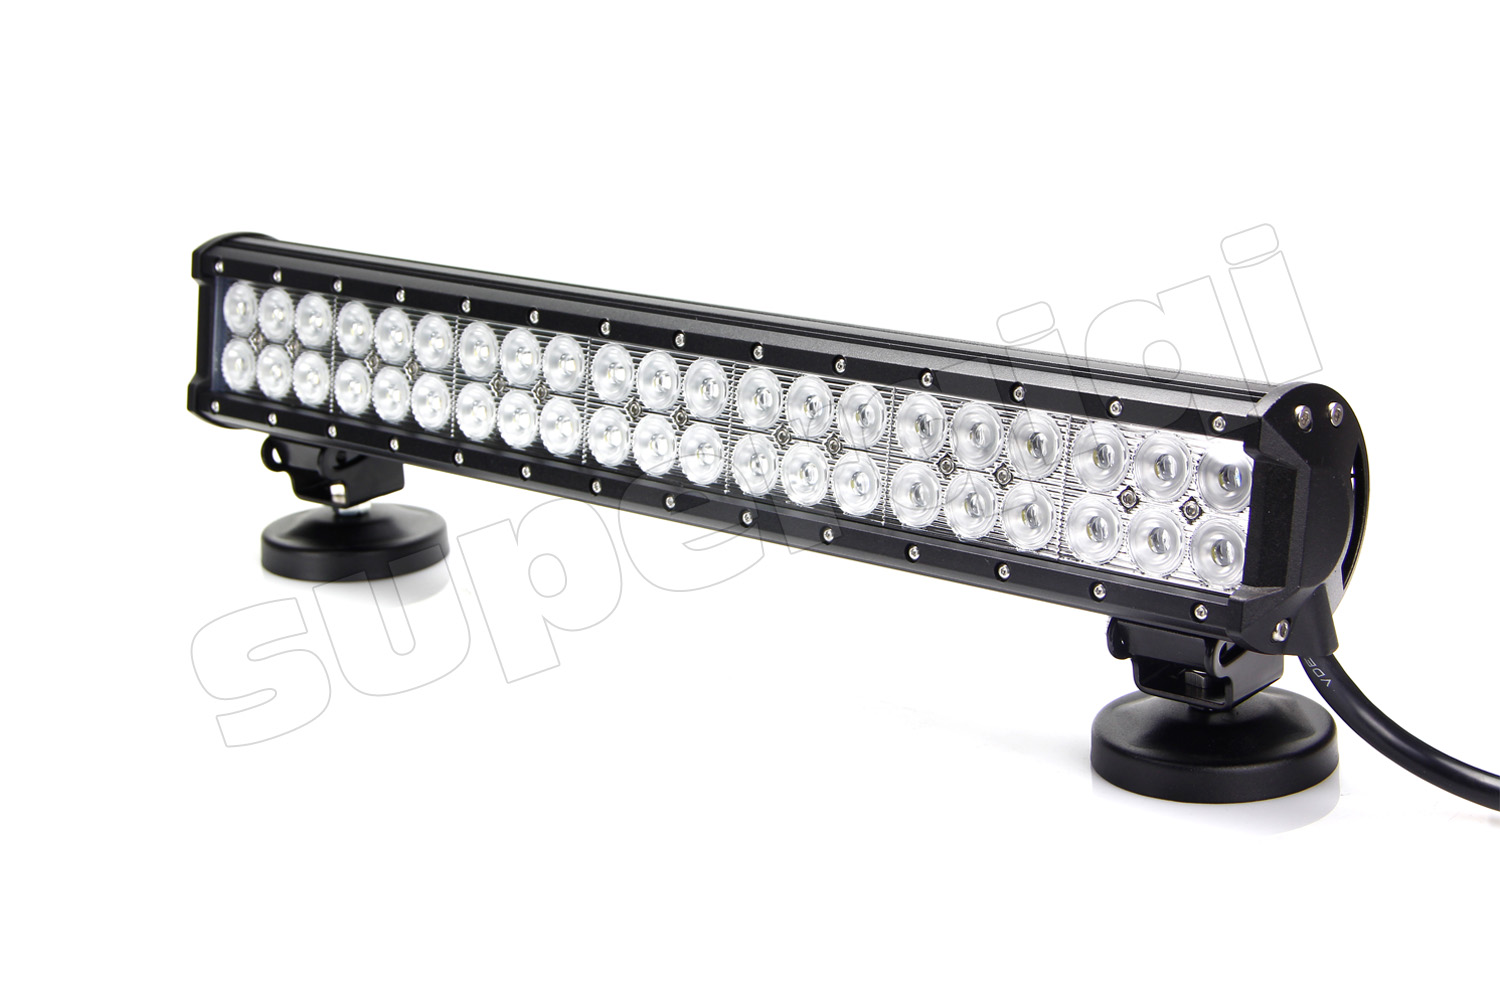 20 u0026quot  126w cree led light bar off road work 10500lm atv utv jeep suv truck 4wd hid